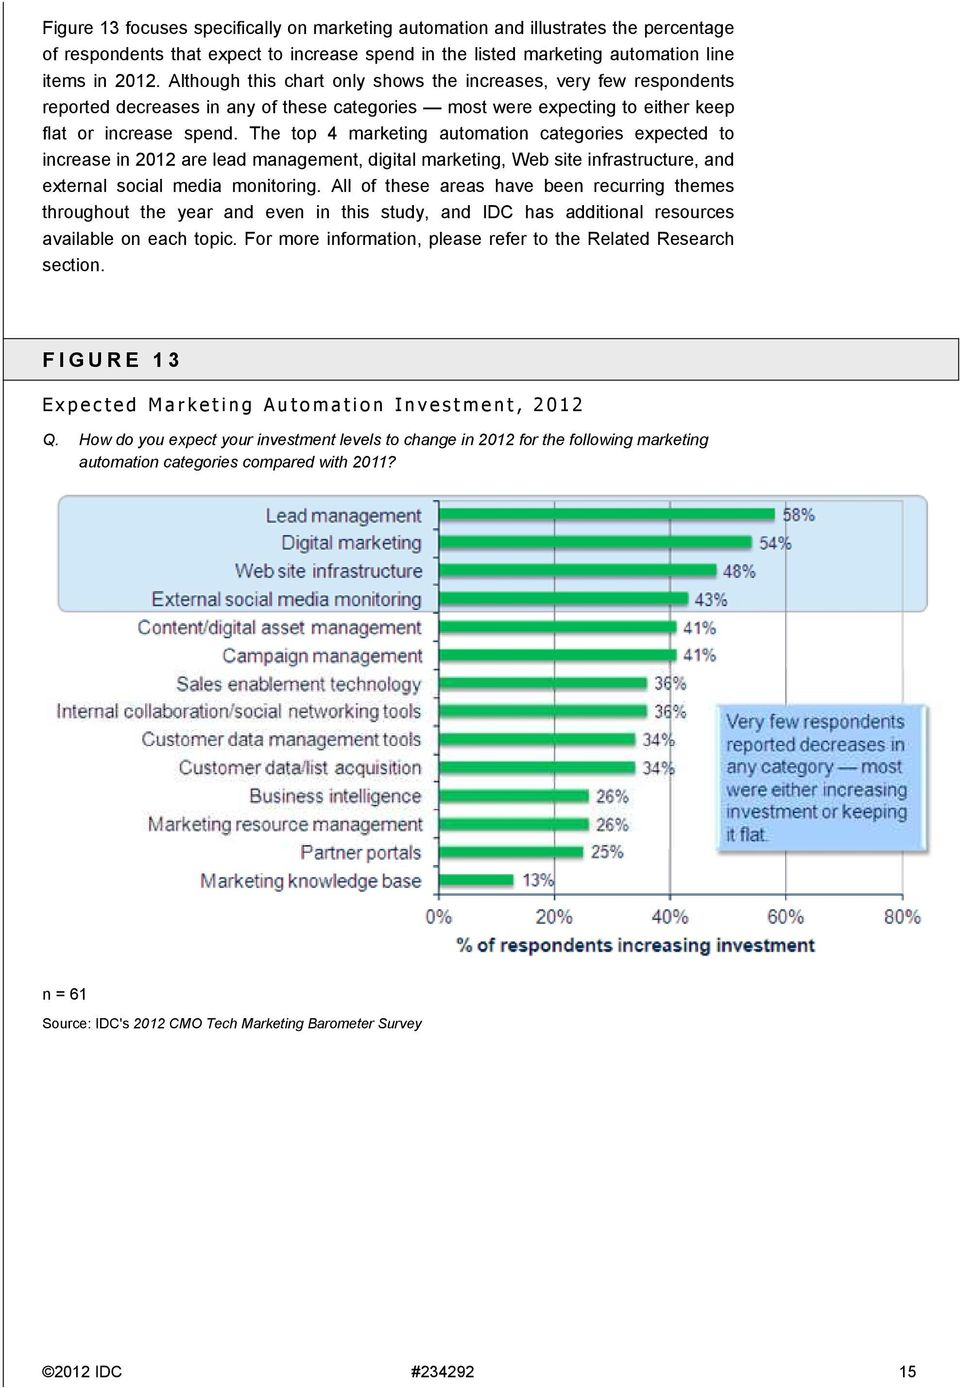 The top 4 marketing automation categories expected to increase in 2012 are lead management, digital marketing, Web site infrastructure, and external social media monitoring.